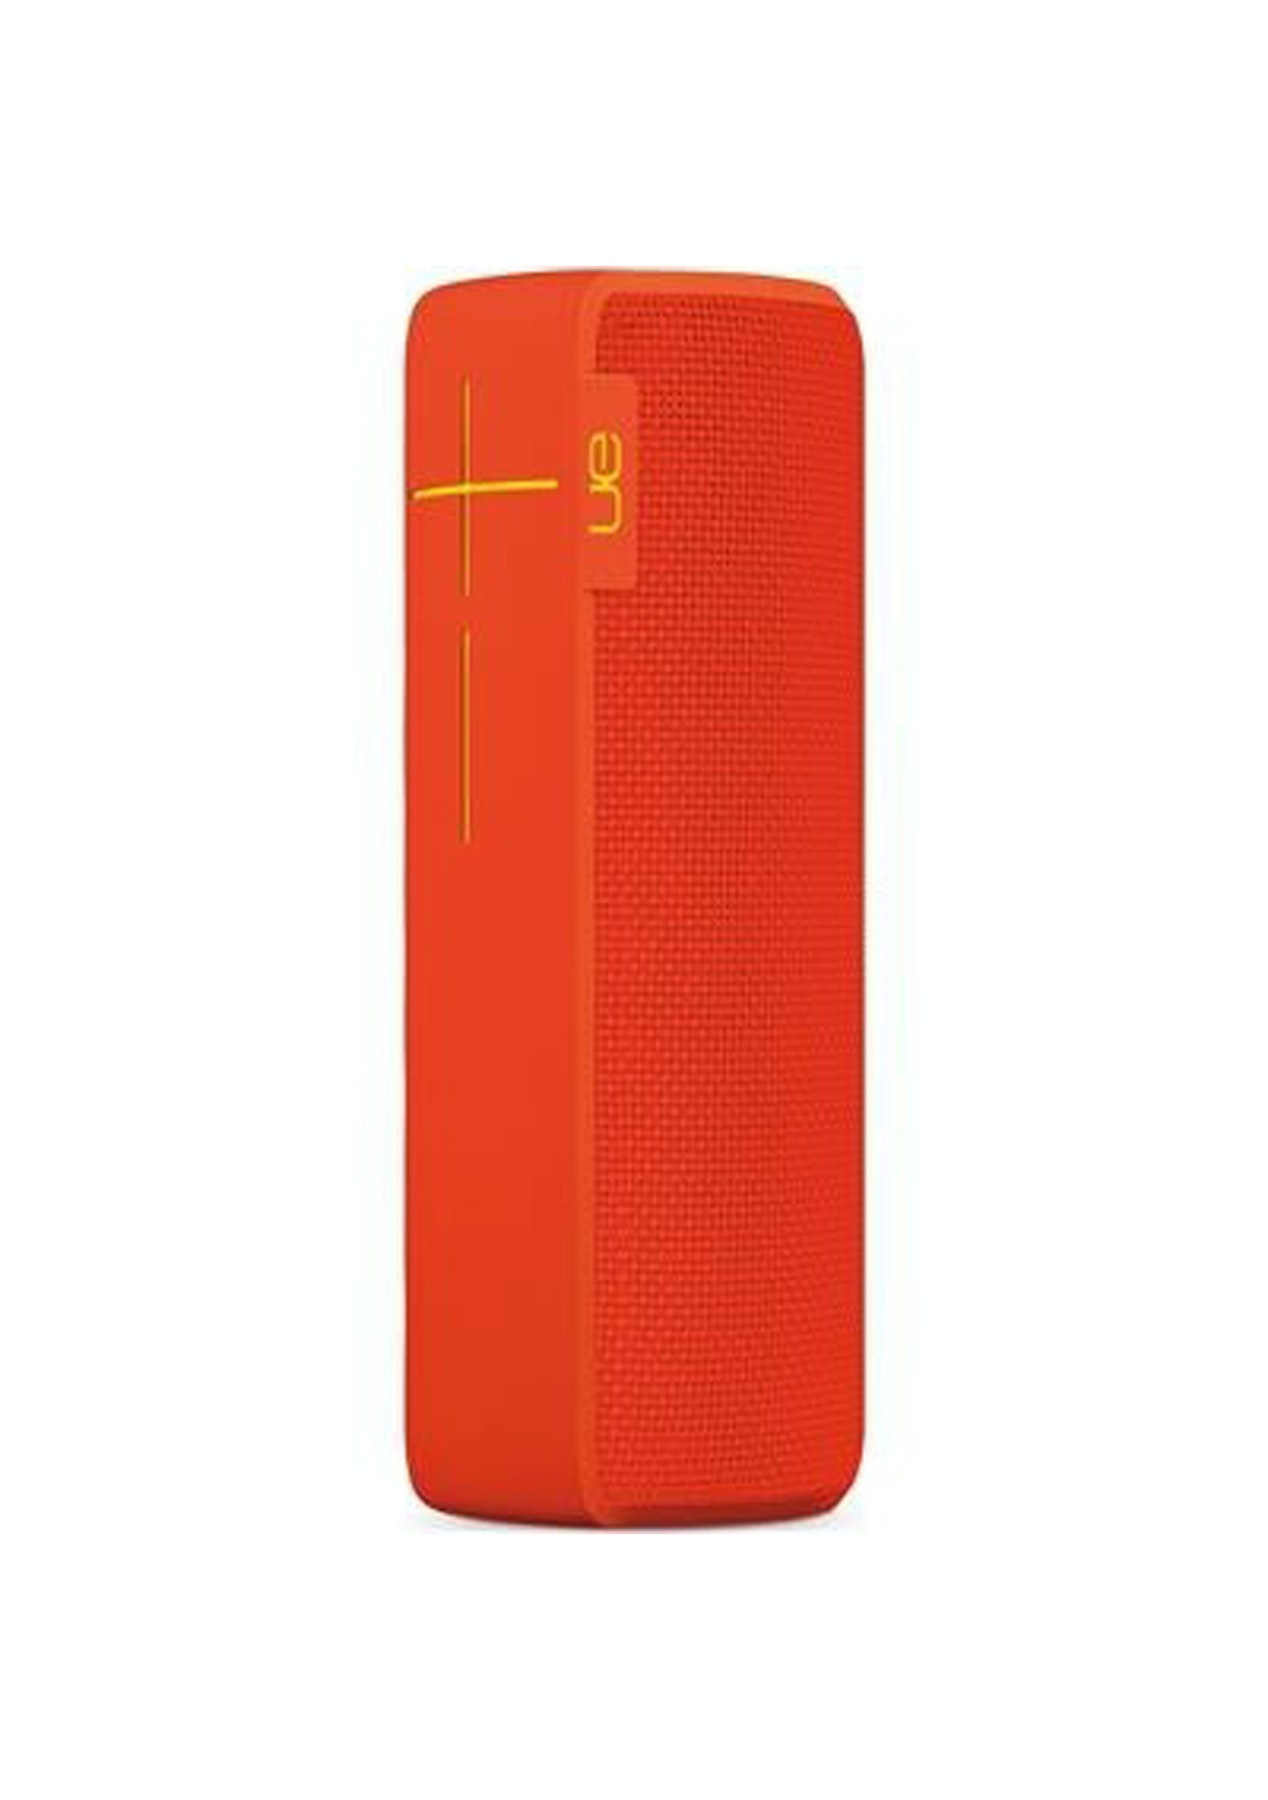 Ultimate Ears UE MEGABOOM Portable Wireless Bluetooth Speaker , JUICY  ORANGE - 2 YEARS WARRANTY